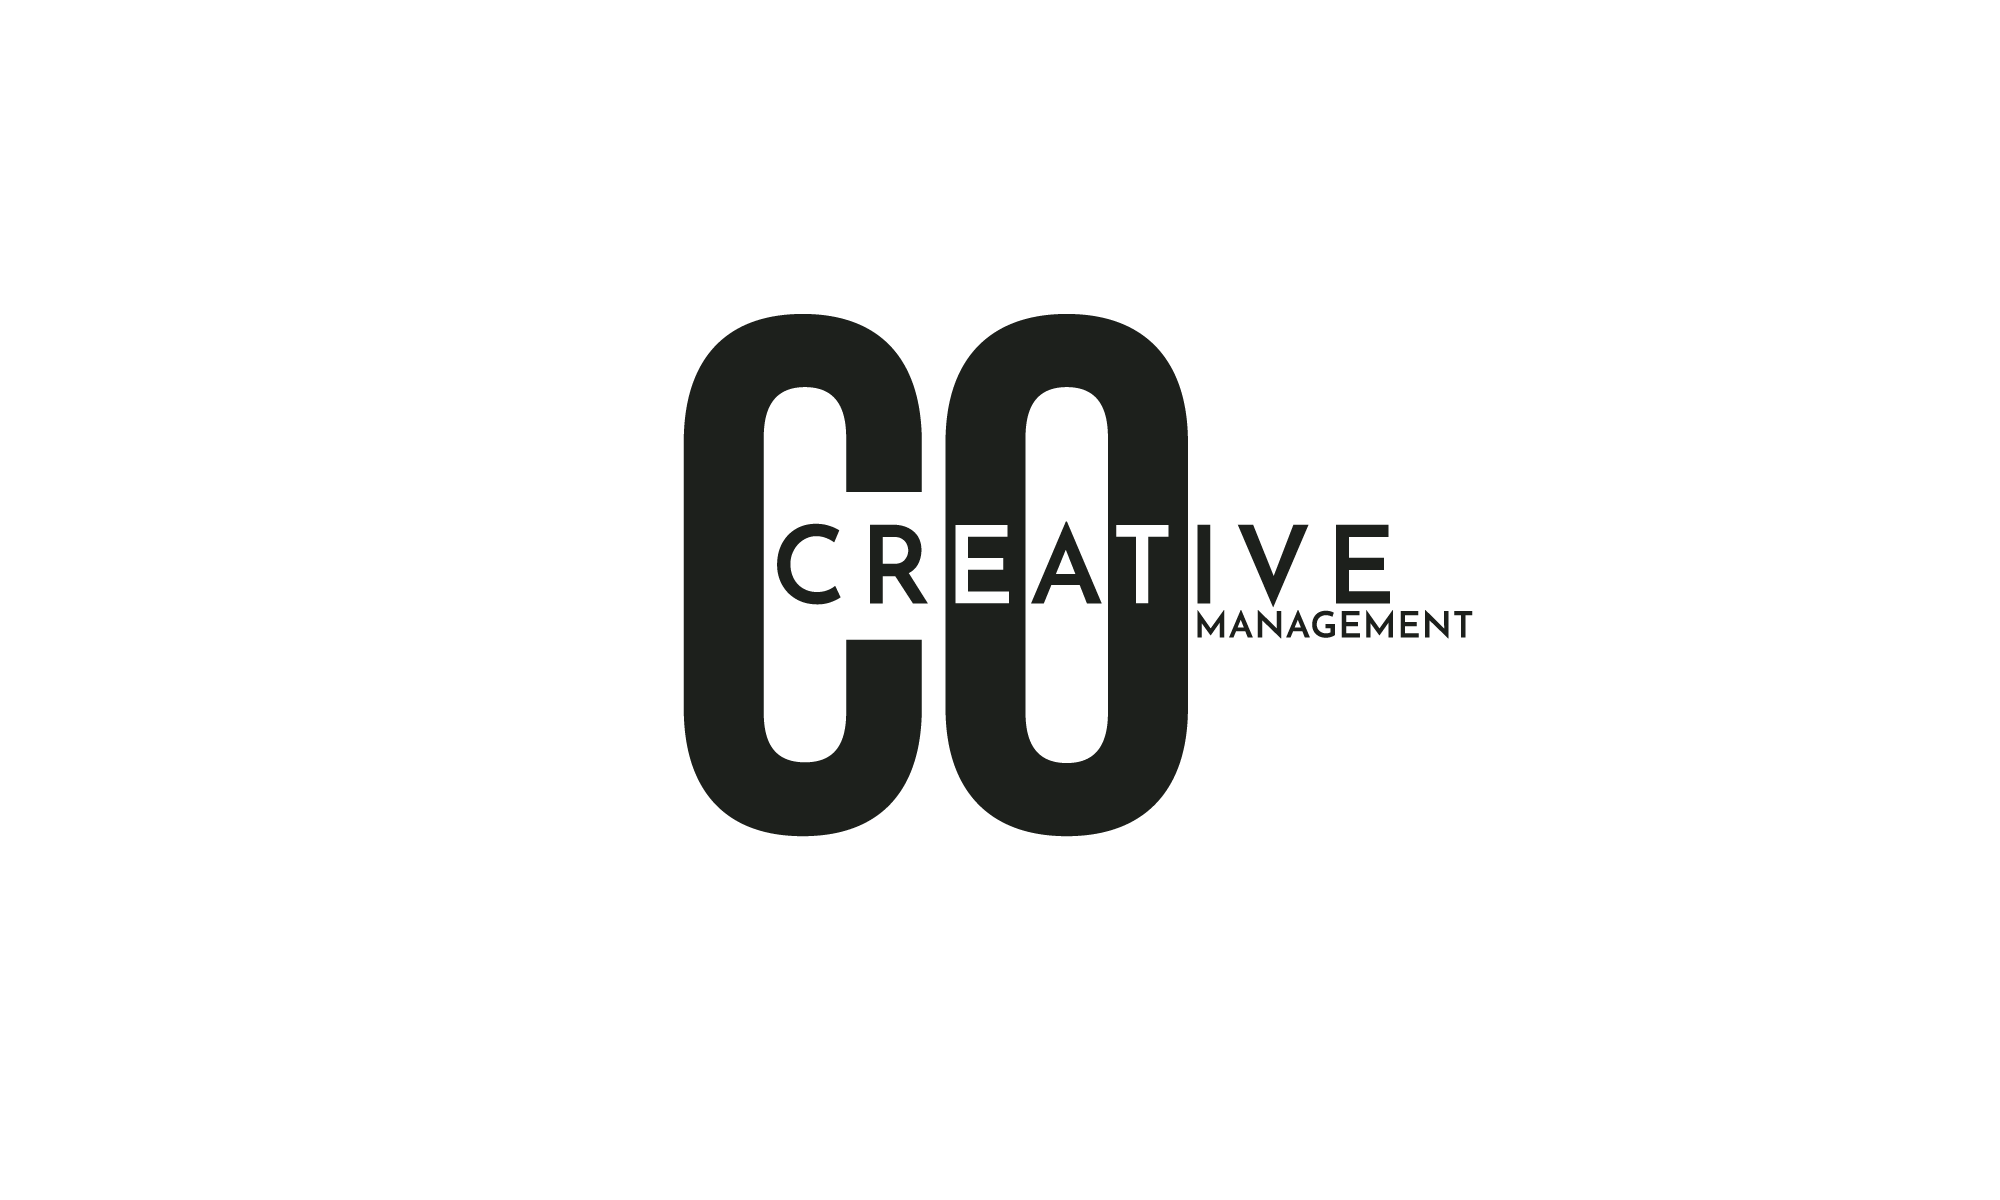 Fractional CMO Services – CoCreative Management